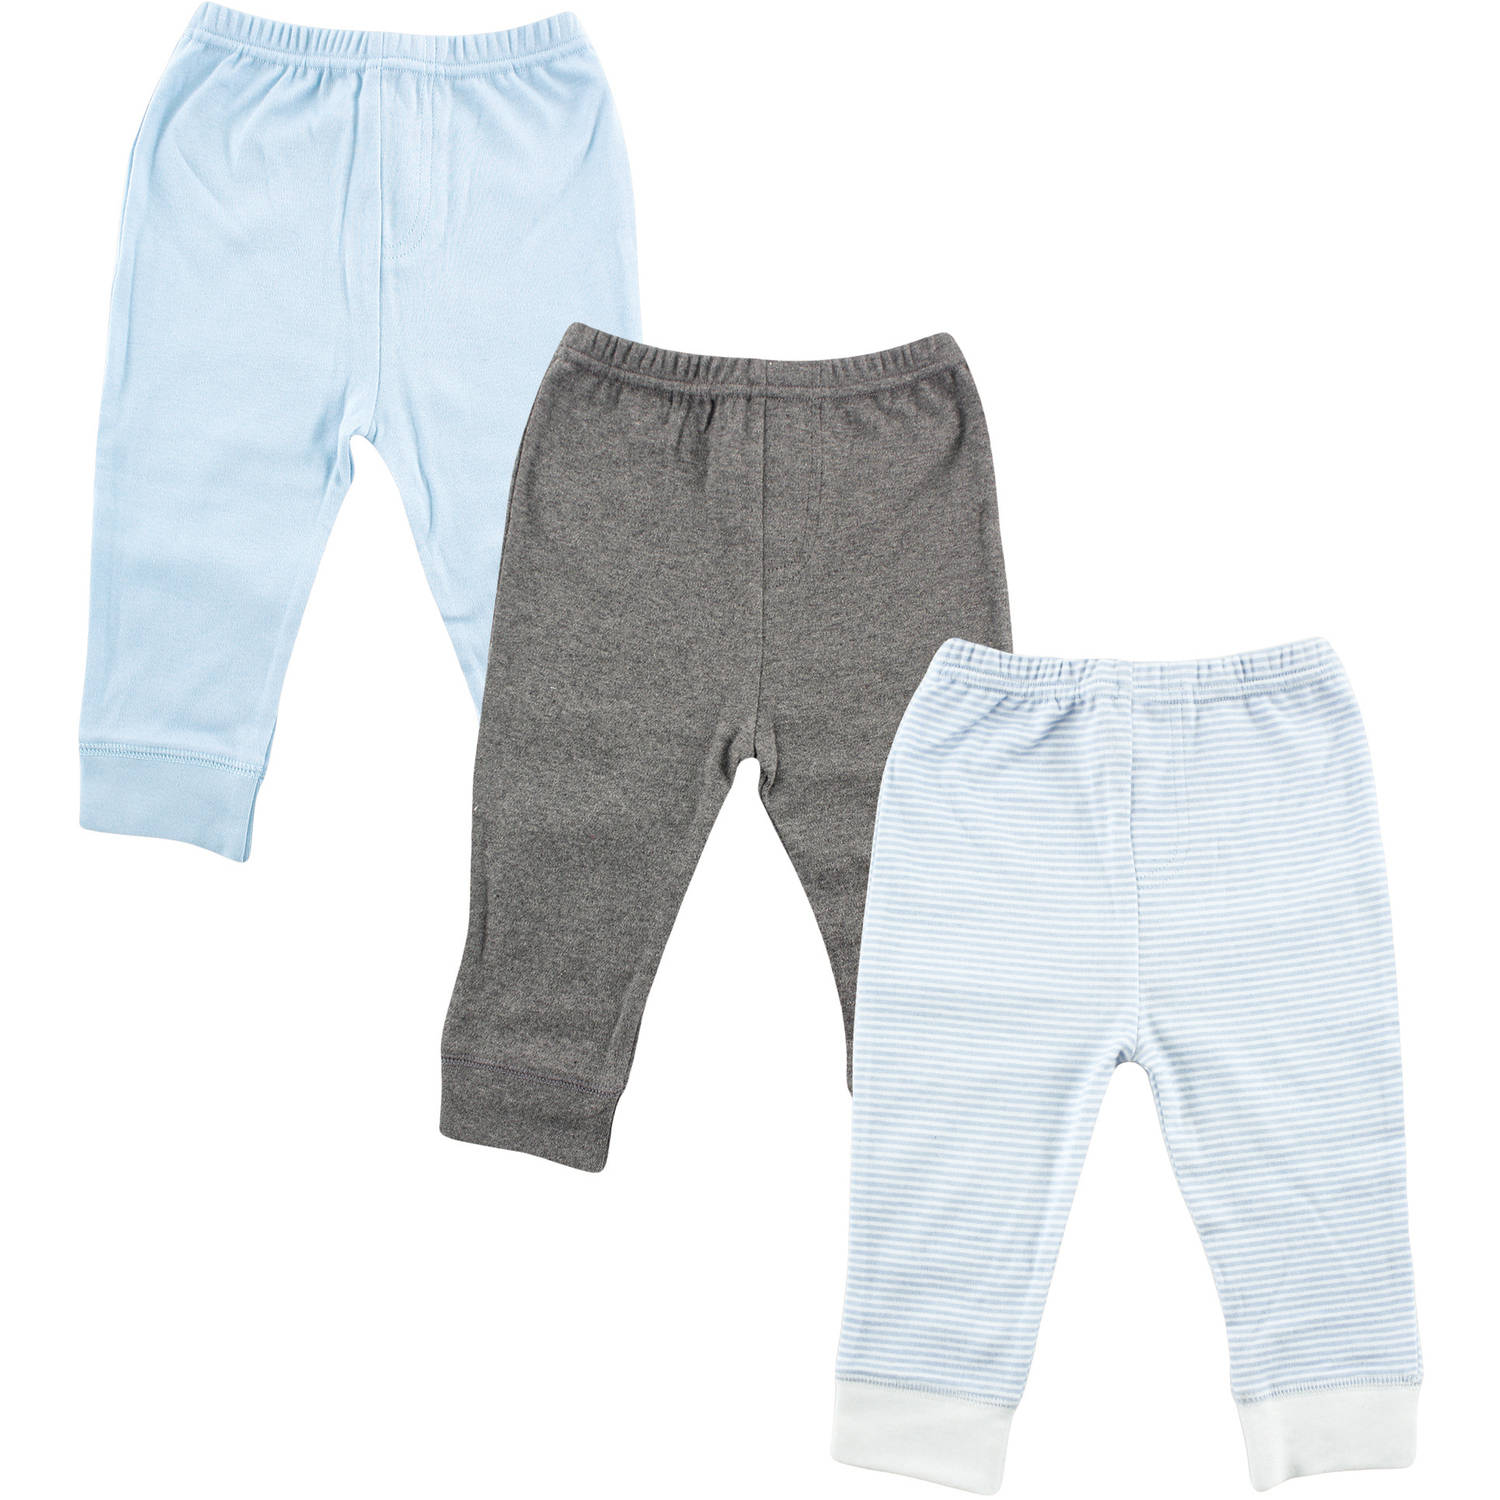 Luvable Friends Newborn Baby Boys Tapered Ankle 3 Pack Pant - Lt Blue Stripe